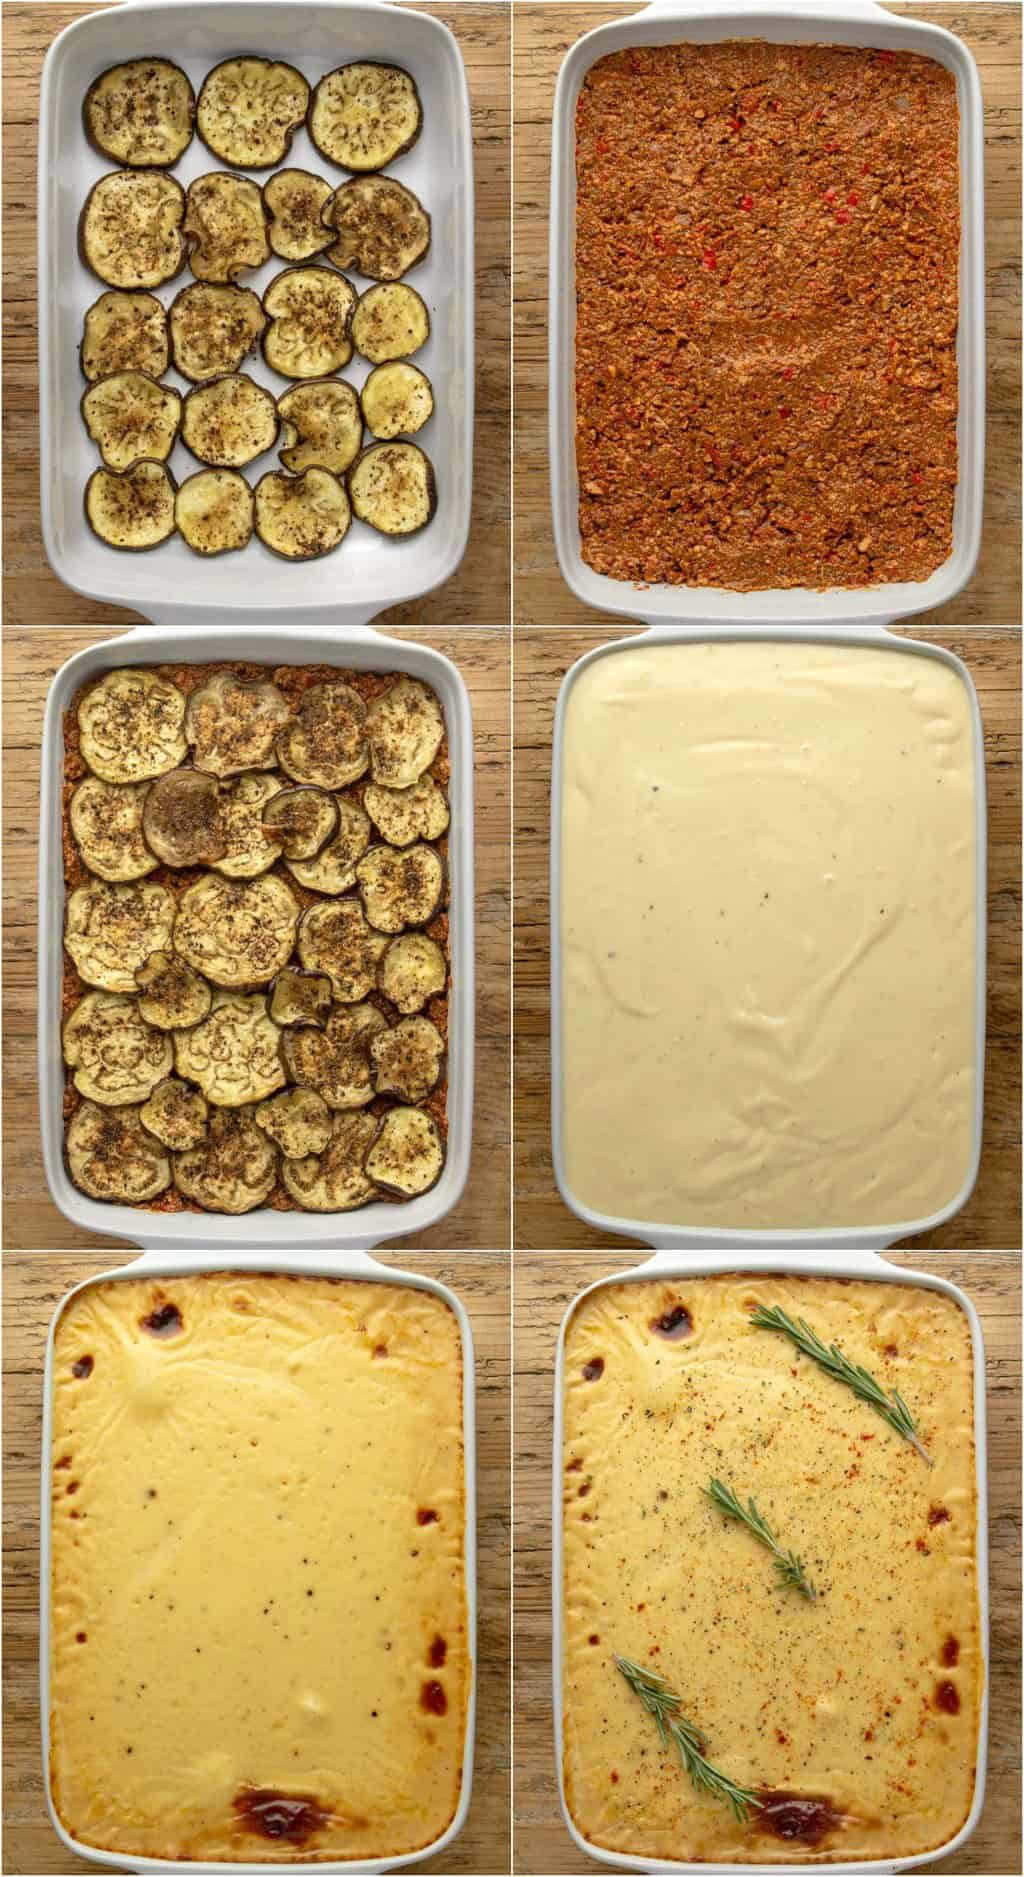 Step by step process photo collage of assembling the layers for vegan moussaka.